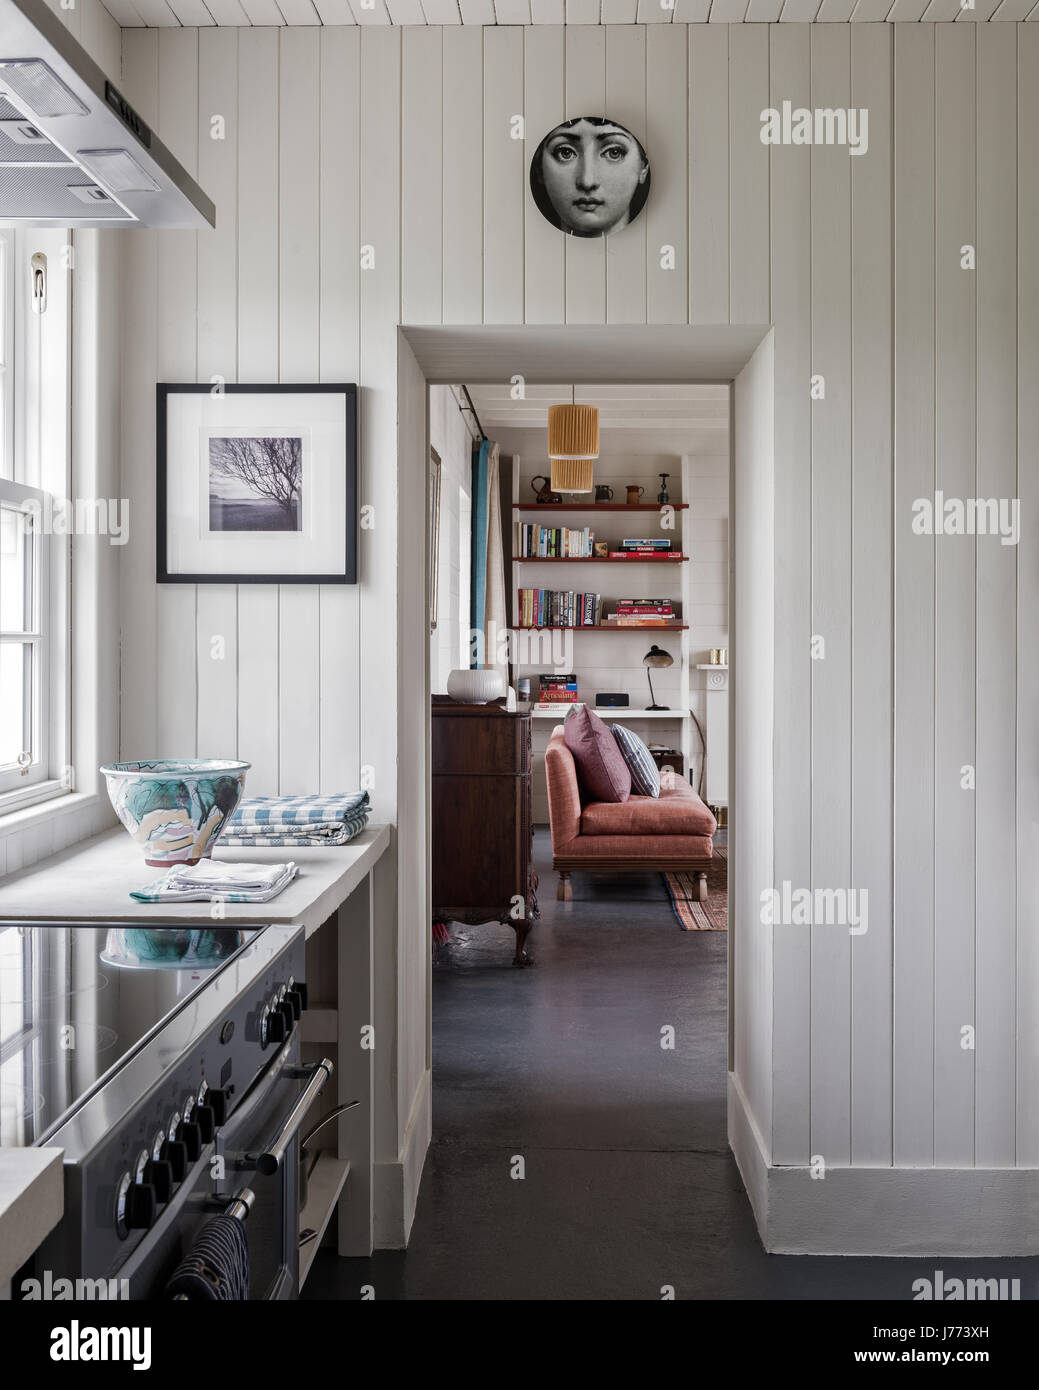 Fornasetti plate above doorway in renovated tongue and groove kitchen - Stock Image